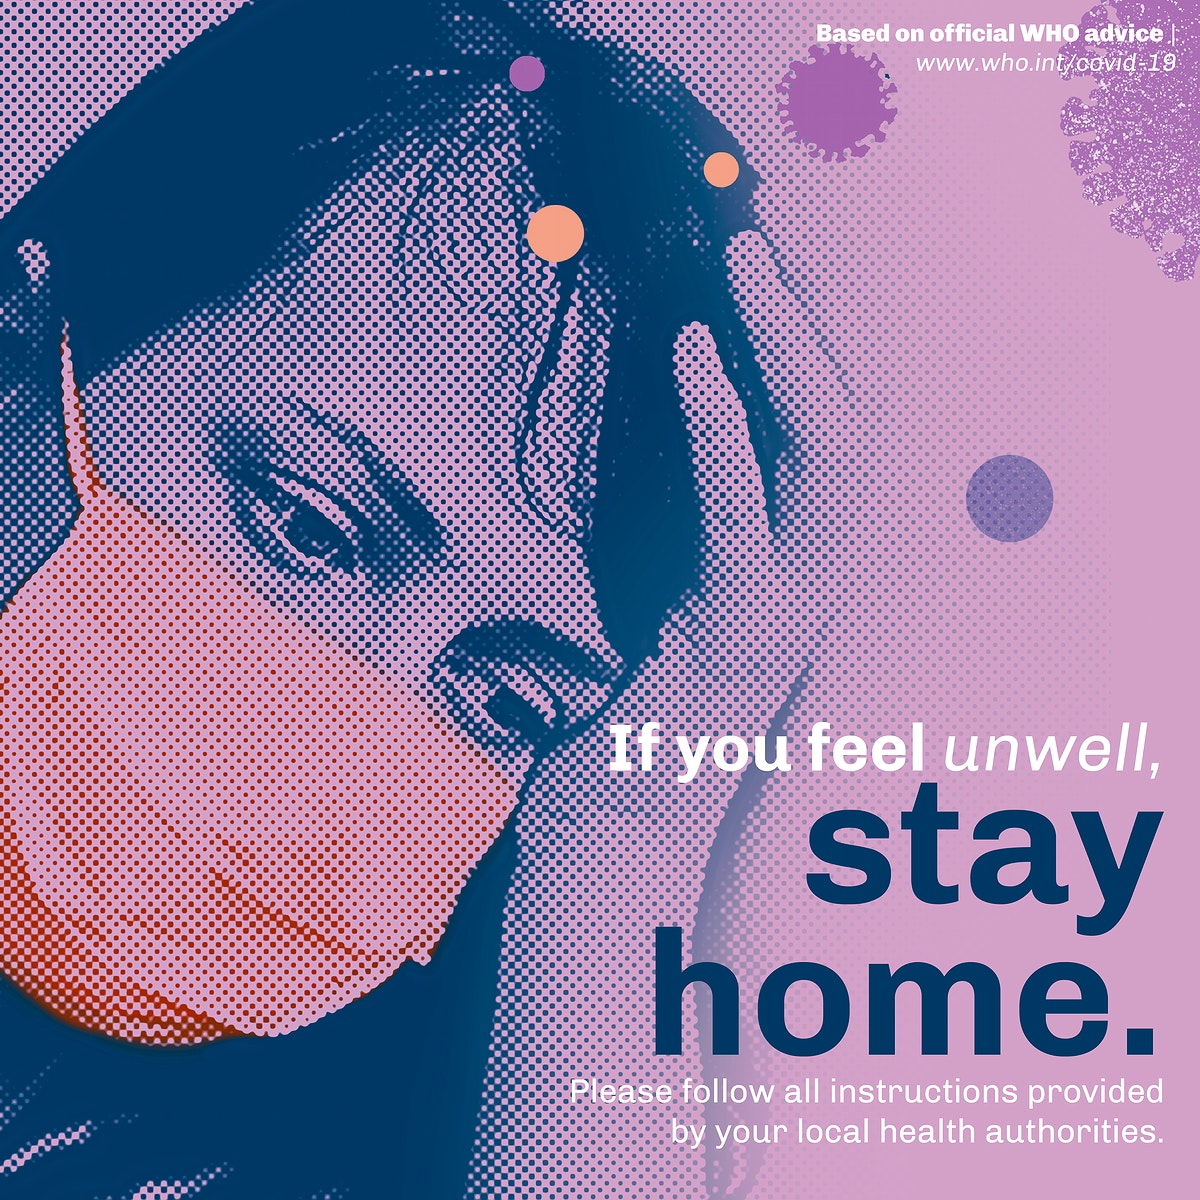 Stay home social template during coronavirus pandemic vector